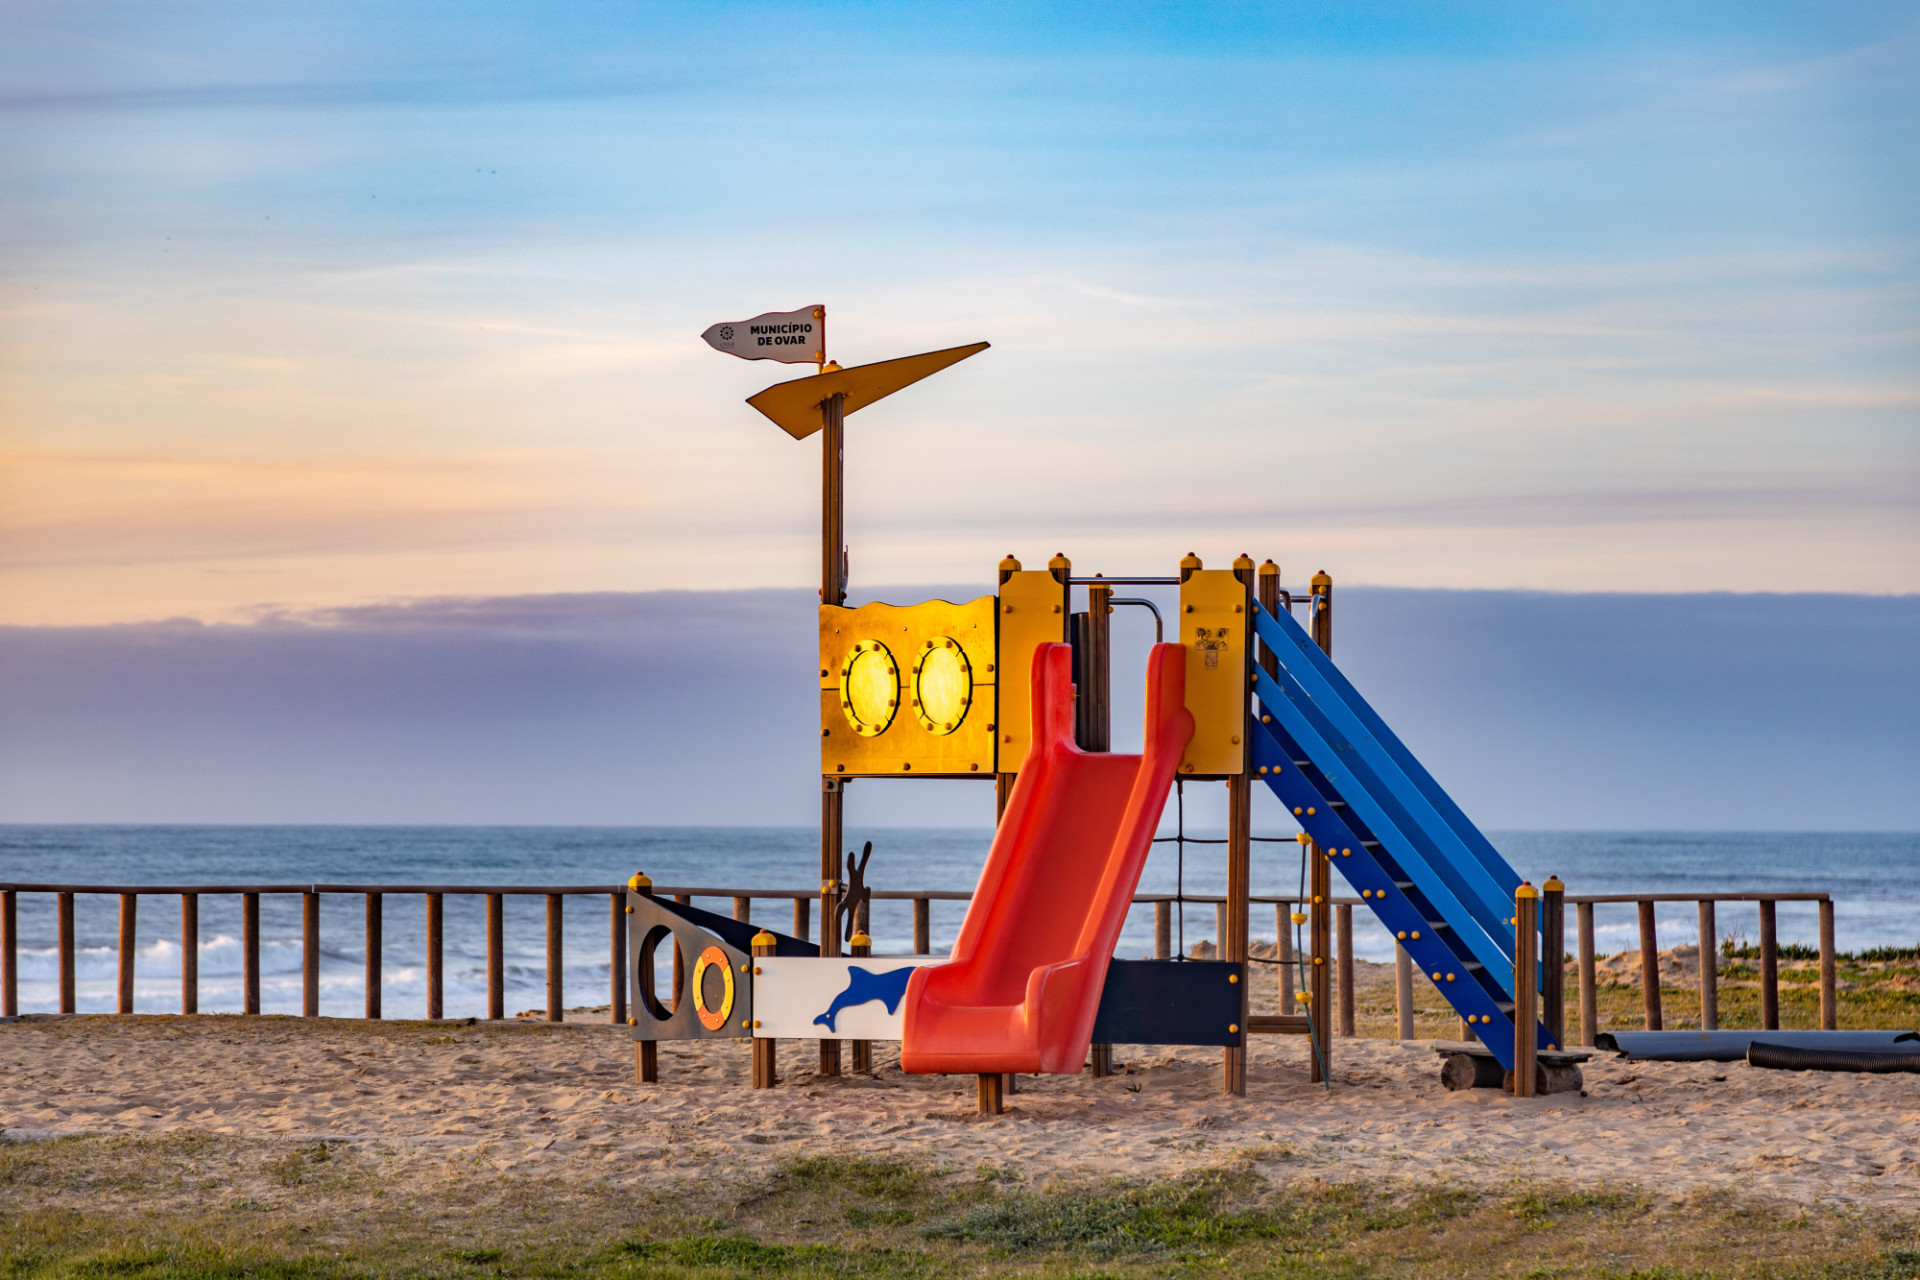 Playground on the beach in Spain